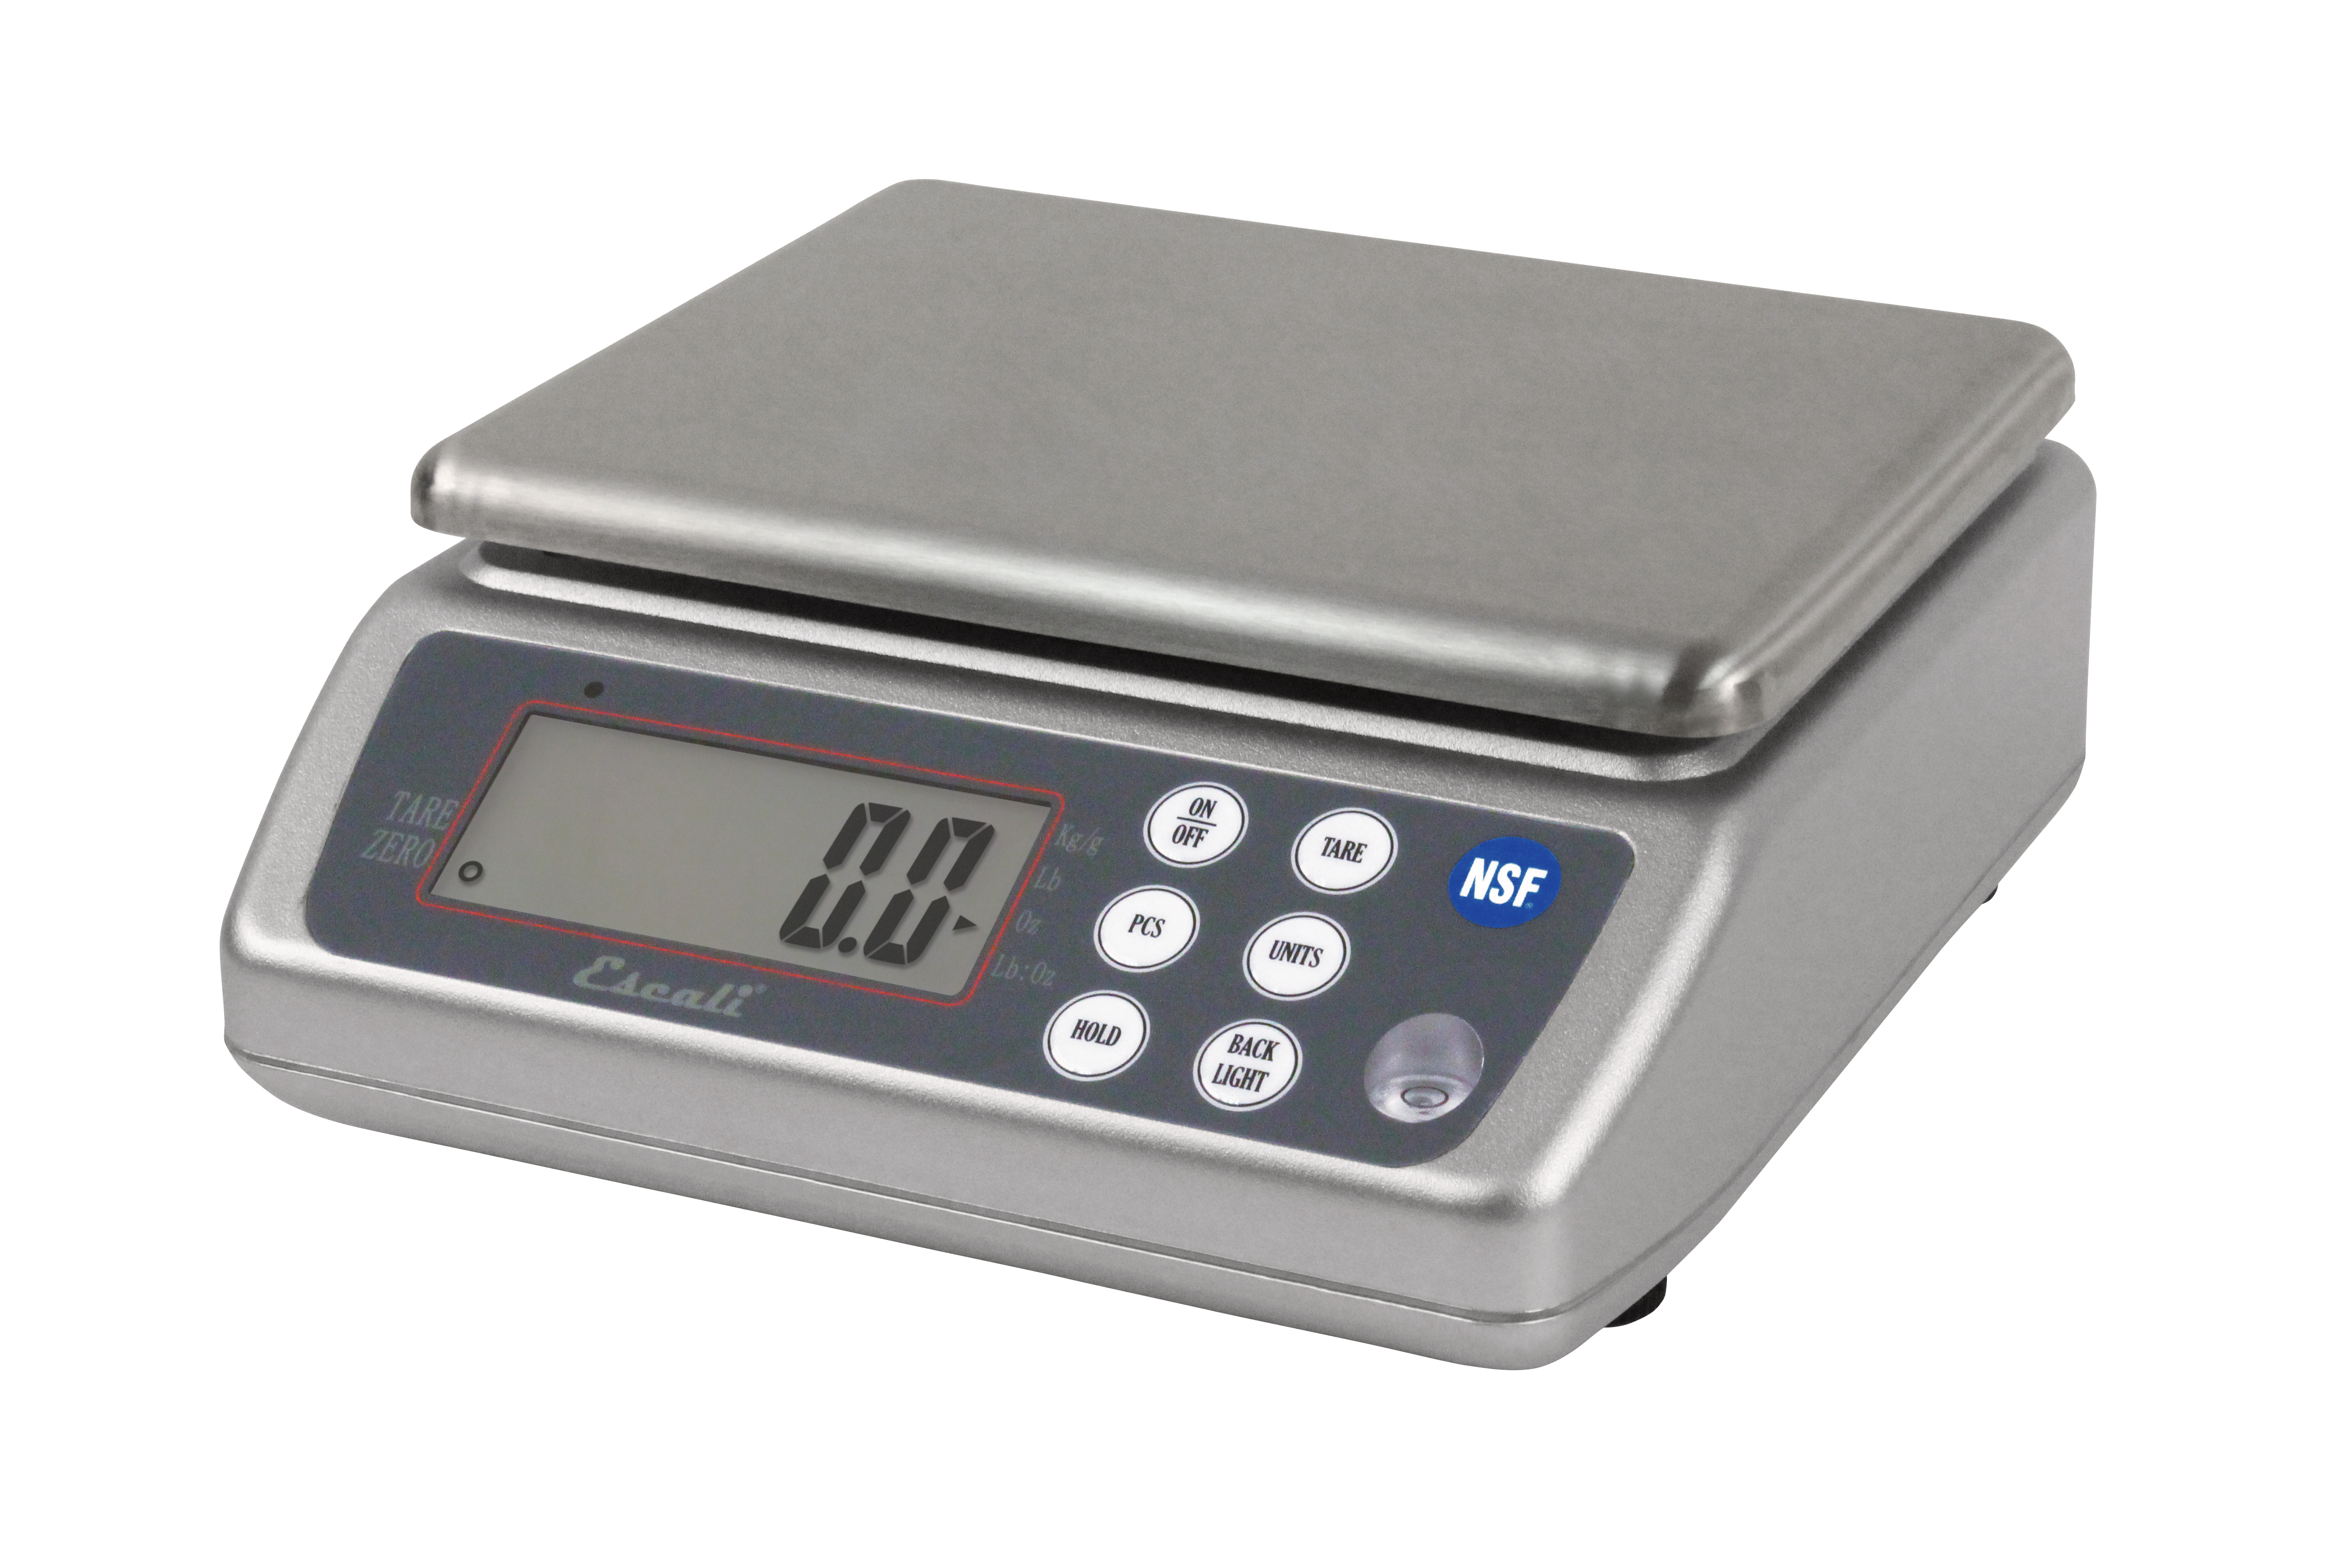 San Jamar SCDG33WD scale, counting